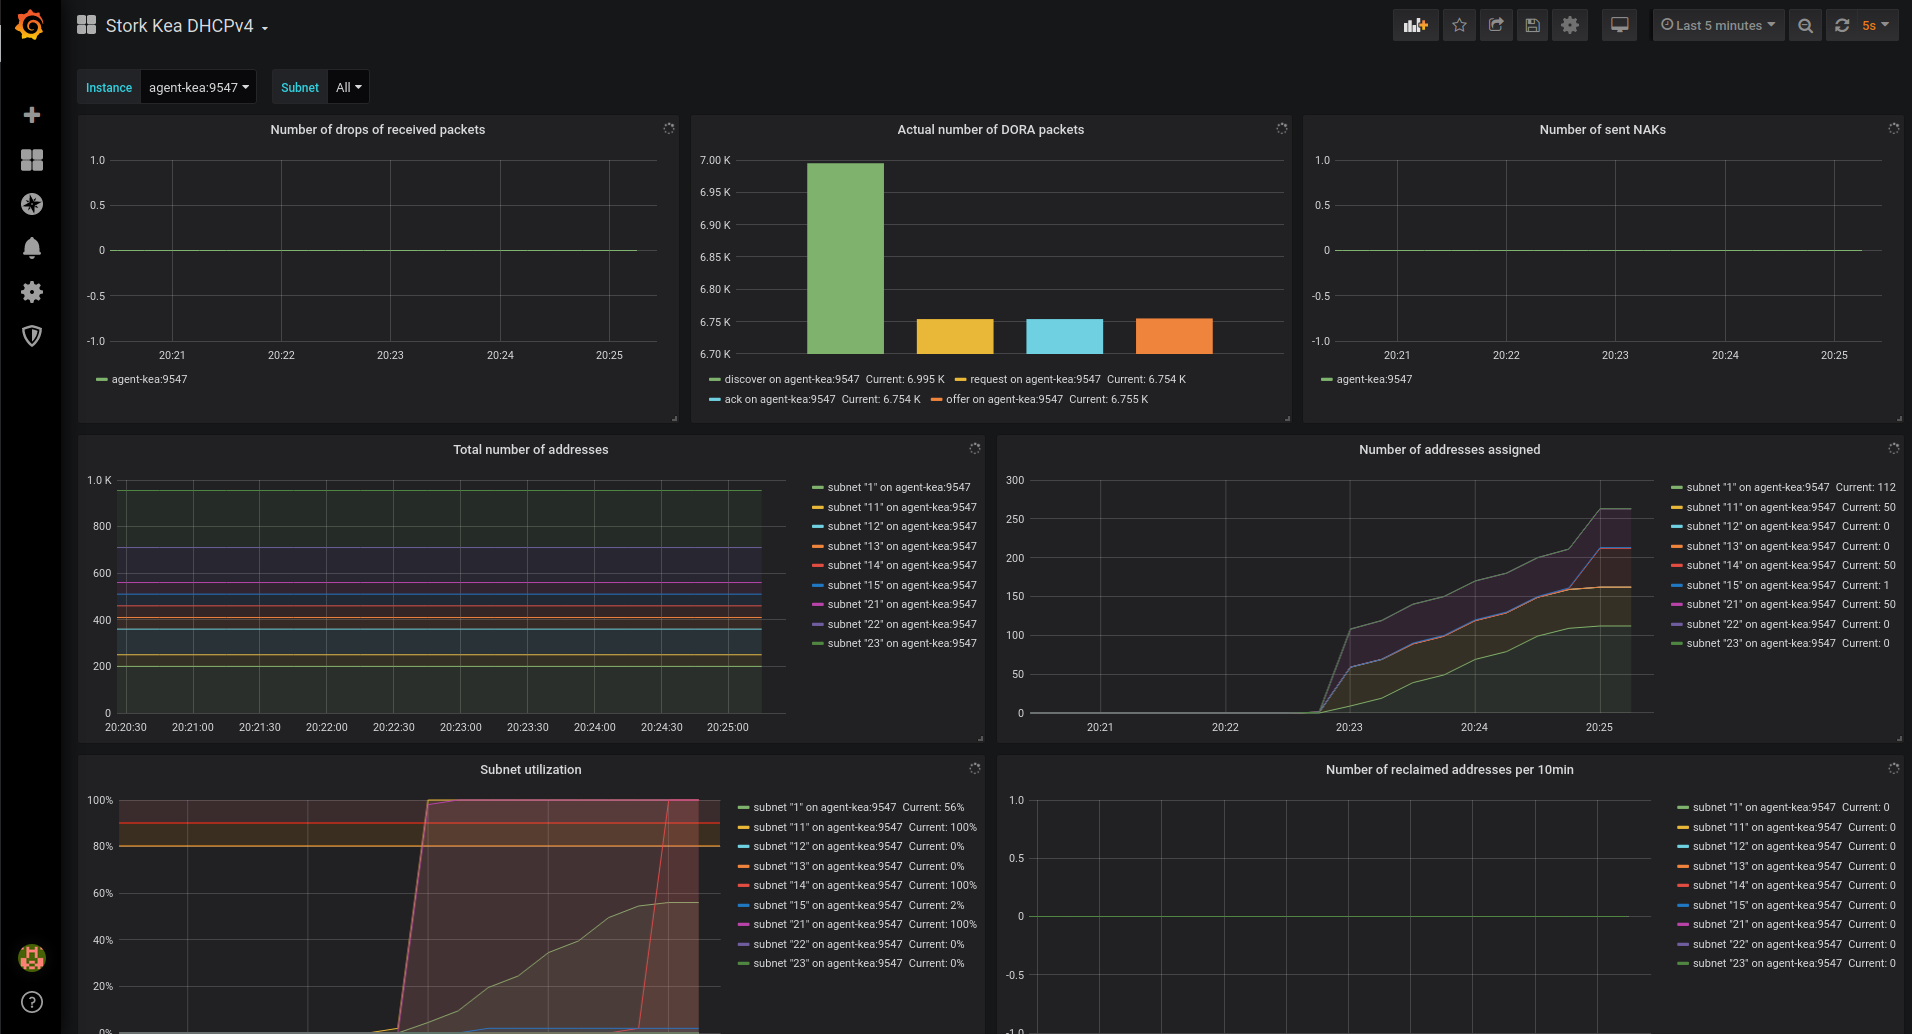 Stork Kea DHCPv4 Dashboard in Grafana